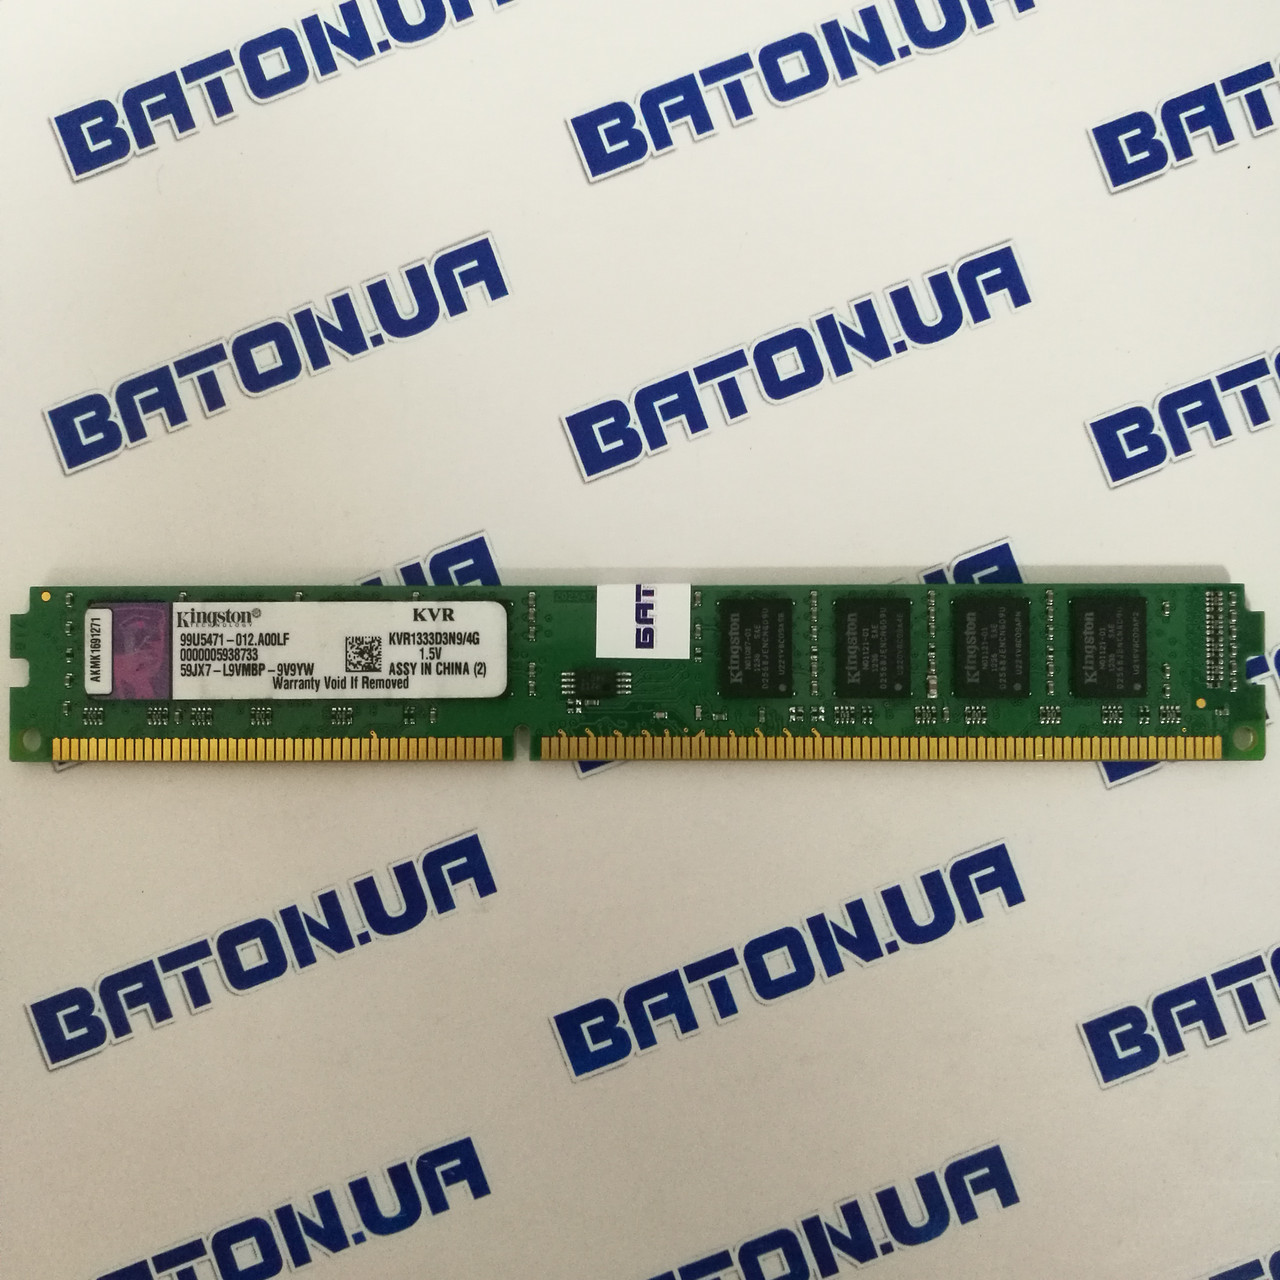 Оперативная память Kingston DDR3 4Gb 1333MHz PC3-10600U 2R8 LP CL9 (KVR1333D3N9/4G)